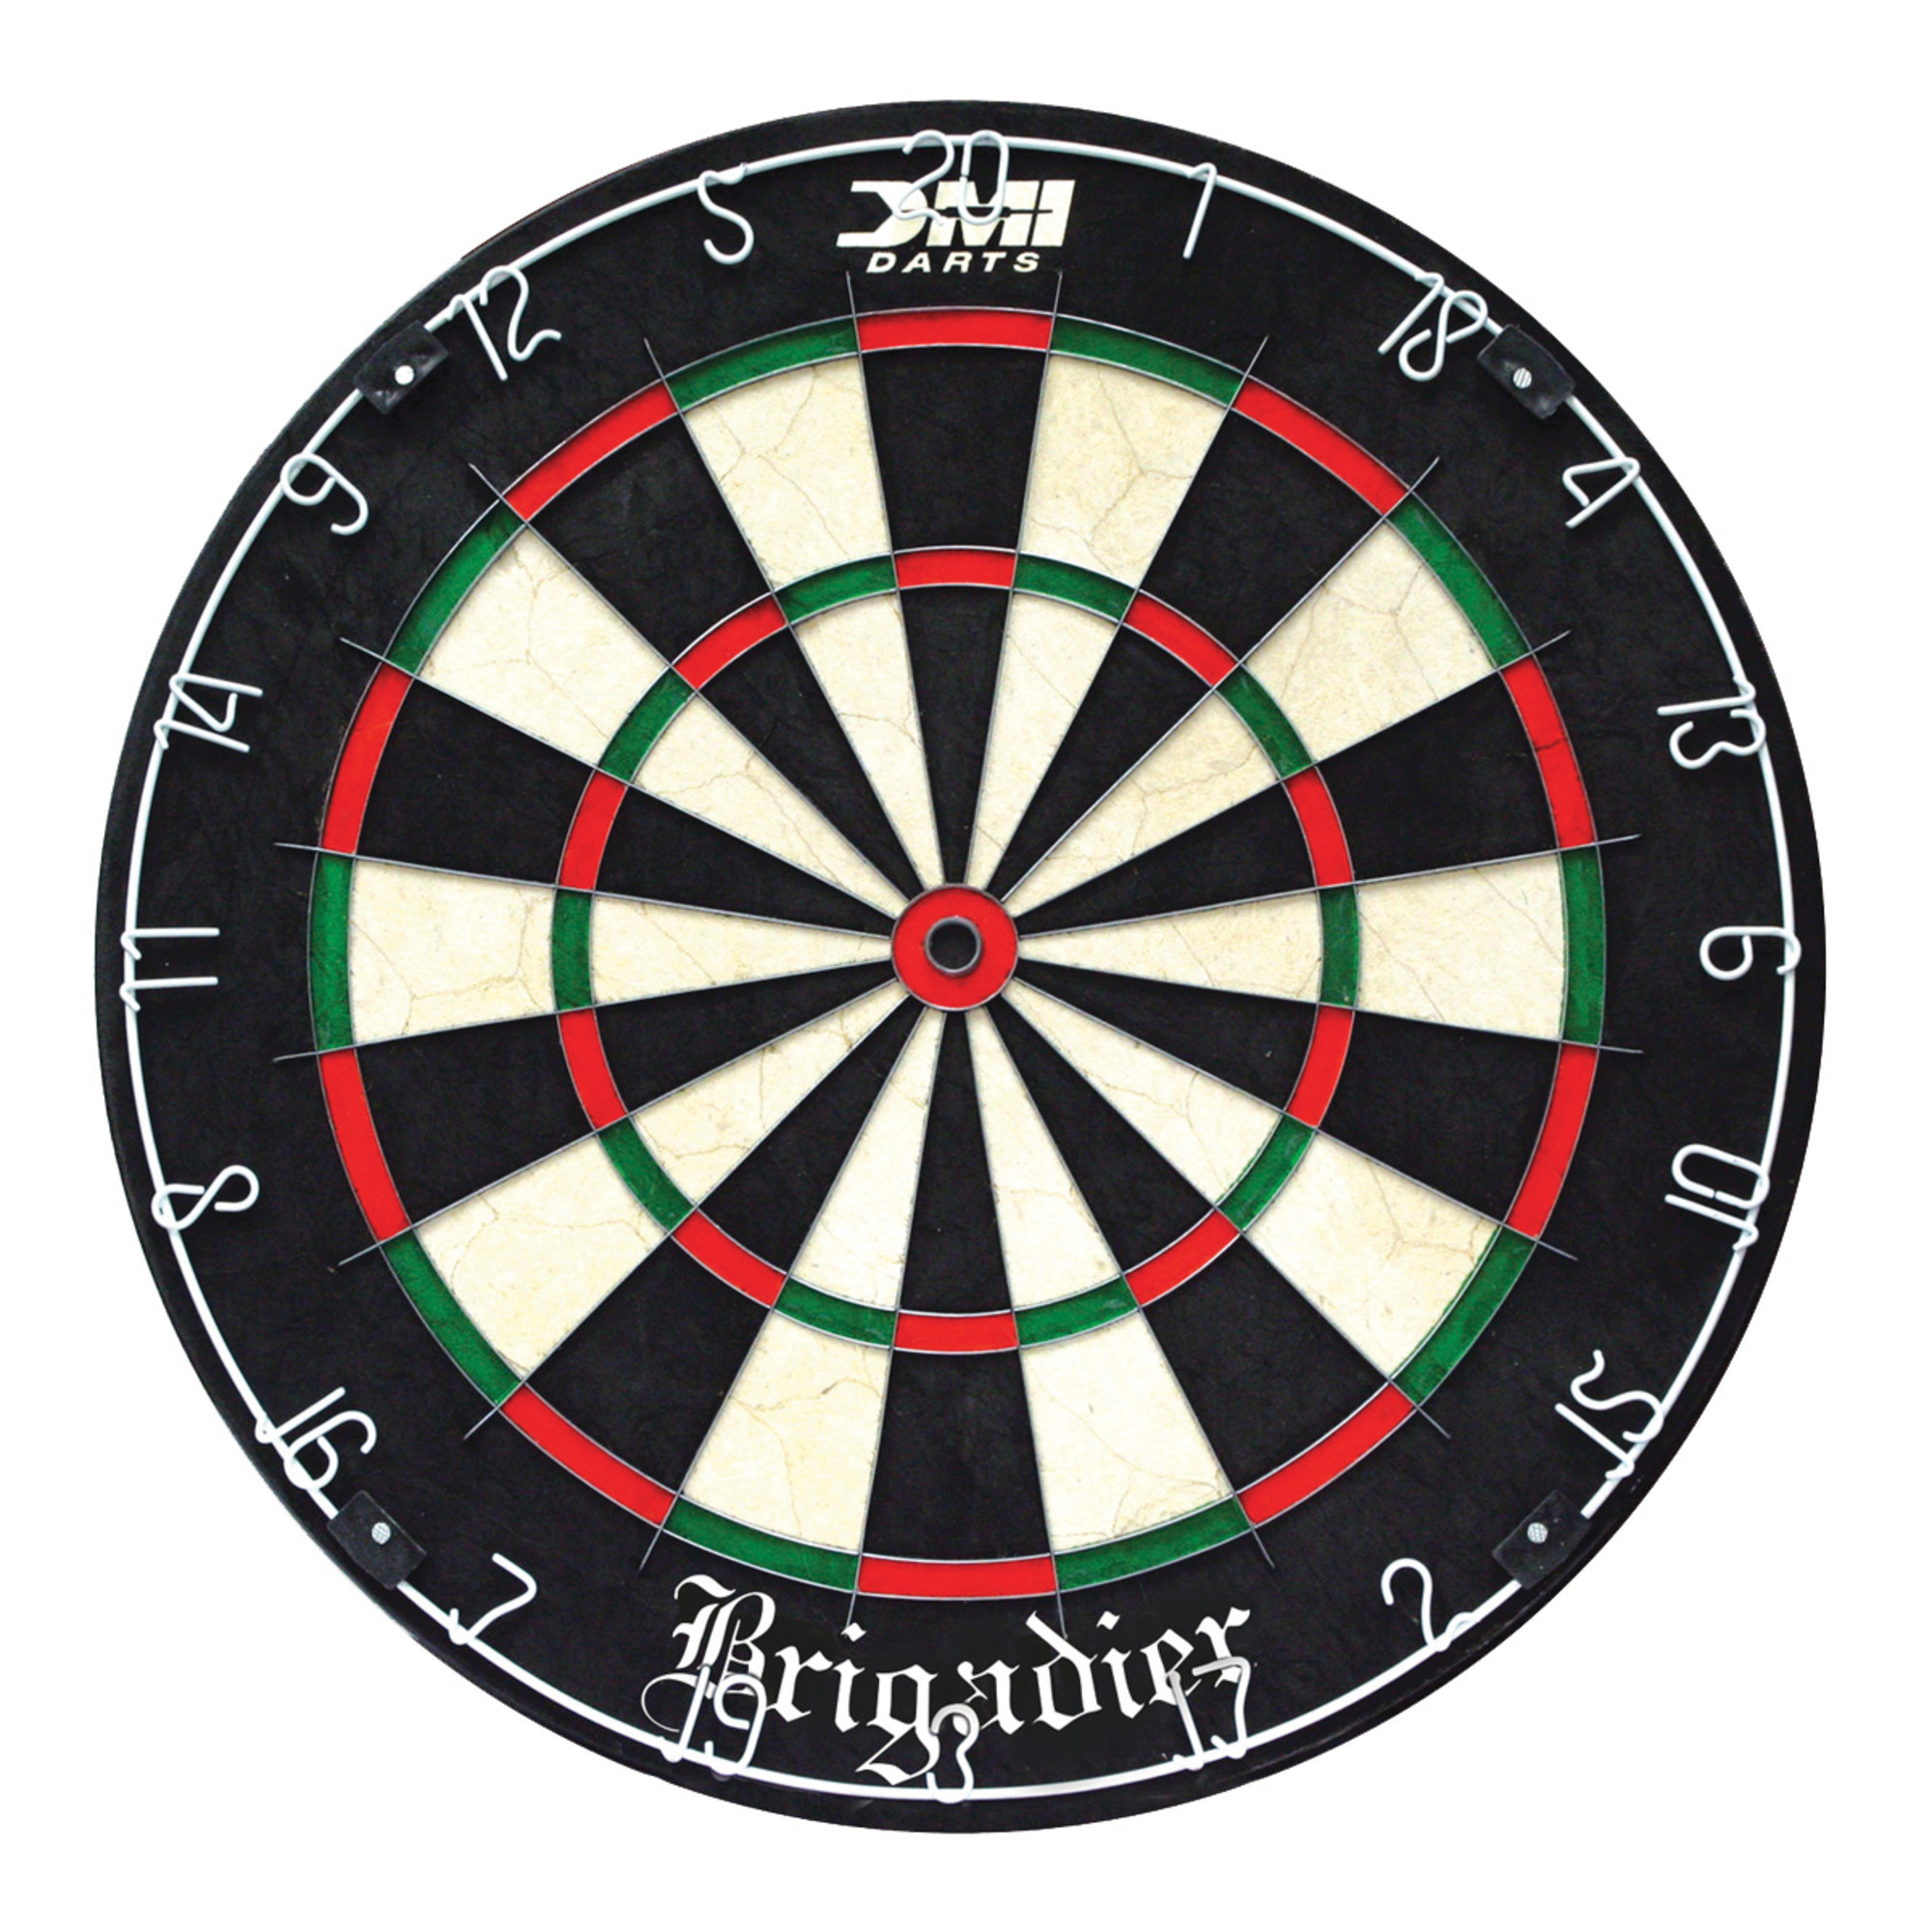 DMI Brigadier Staple-Free Bristle Dartboard